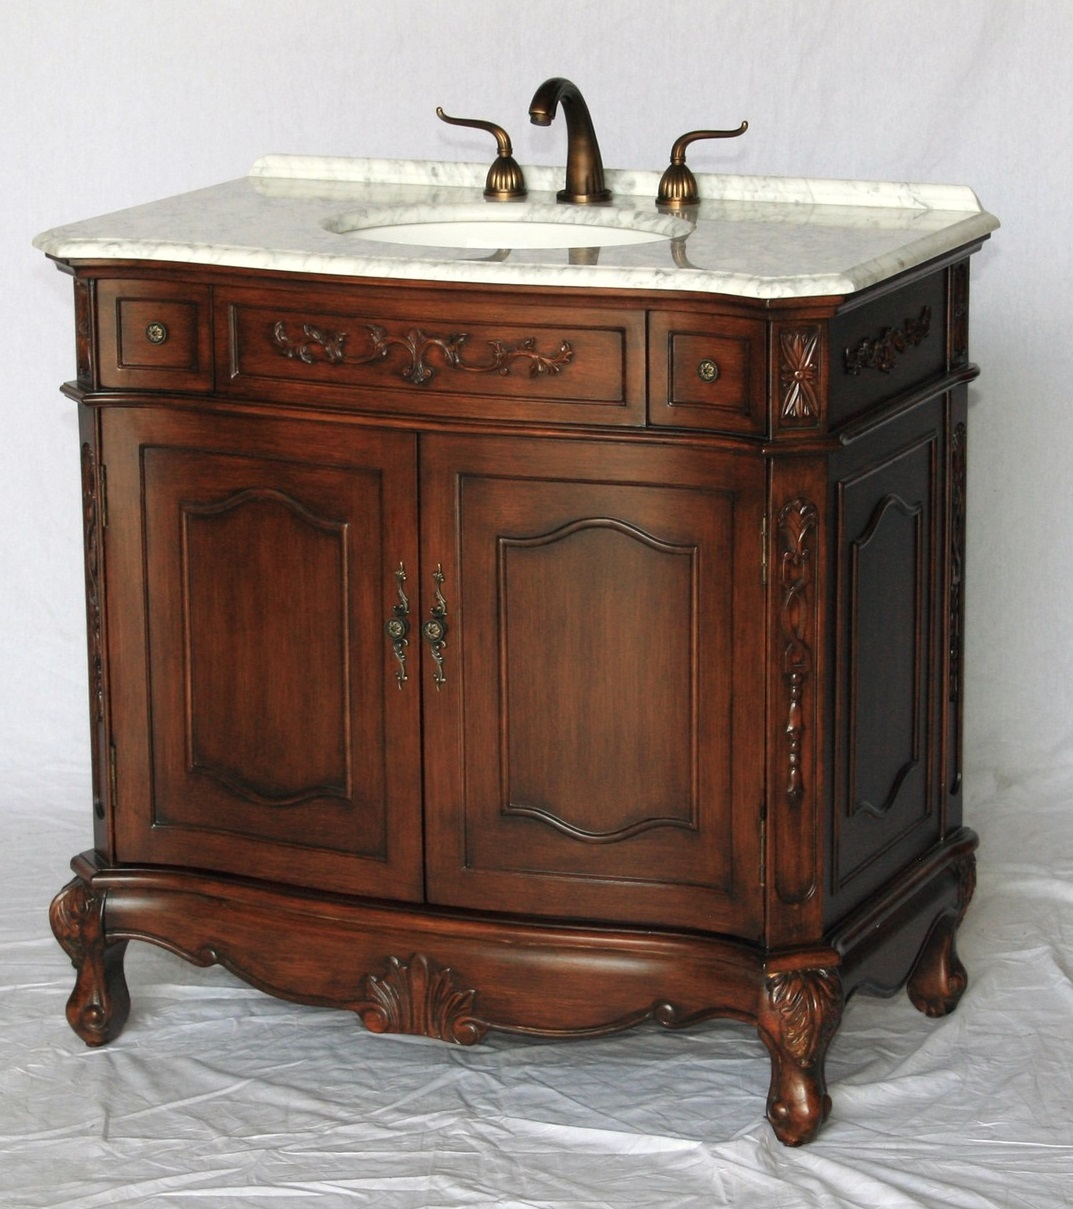 36 inch bathroom vanity antique walnut color carrara marble top (36 36 Inch Bathroom Vanity